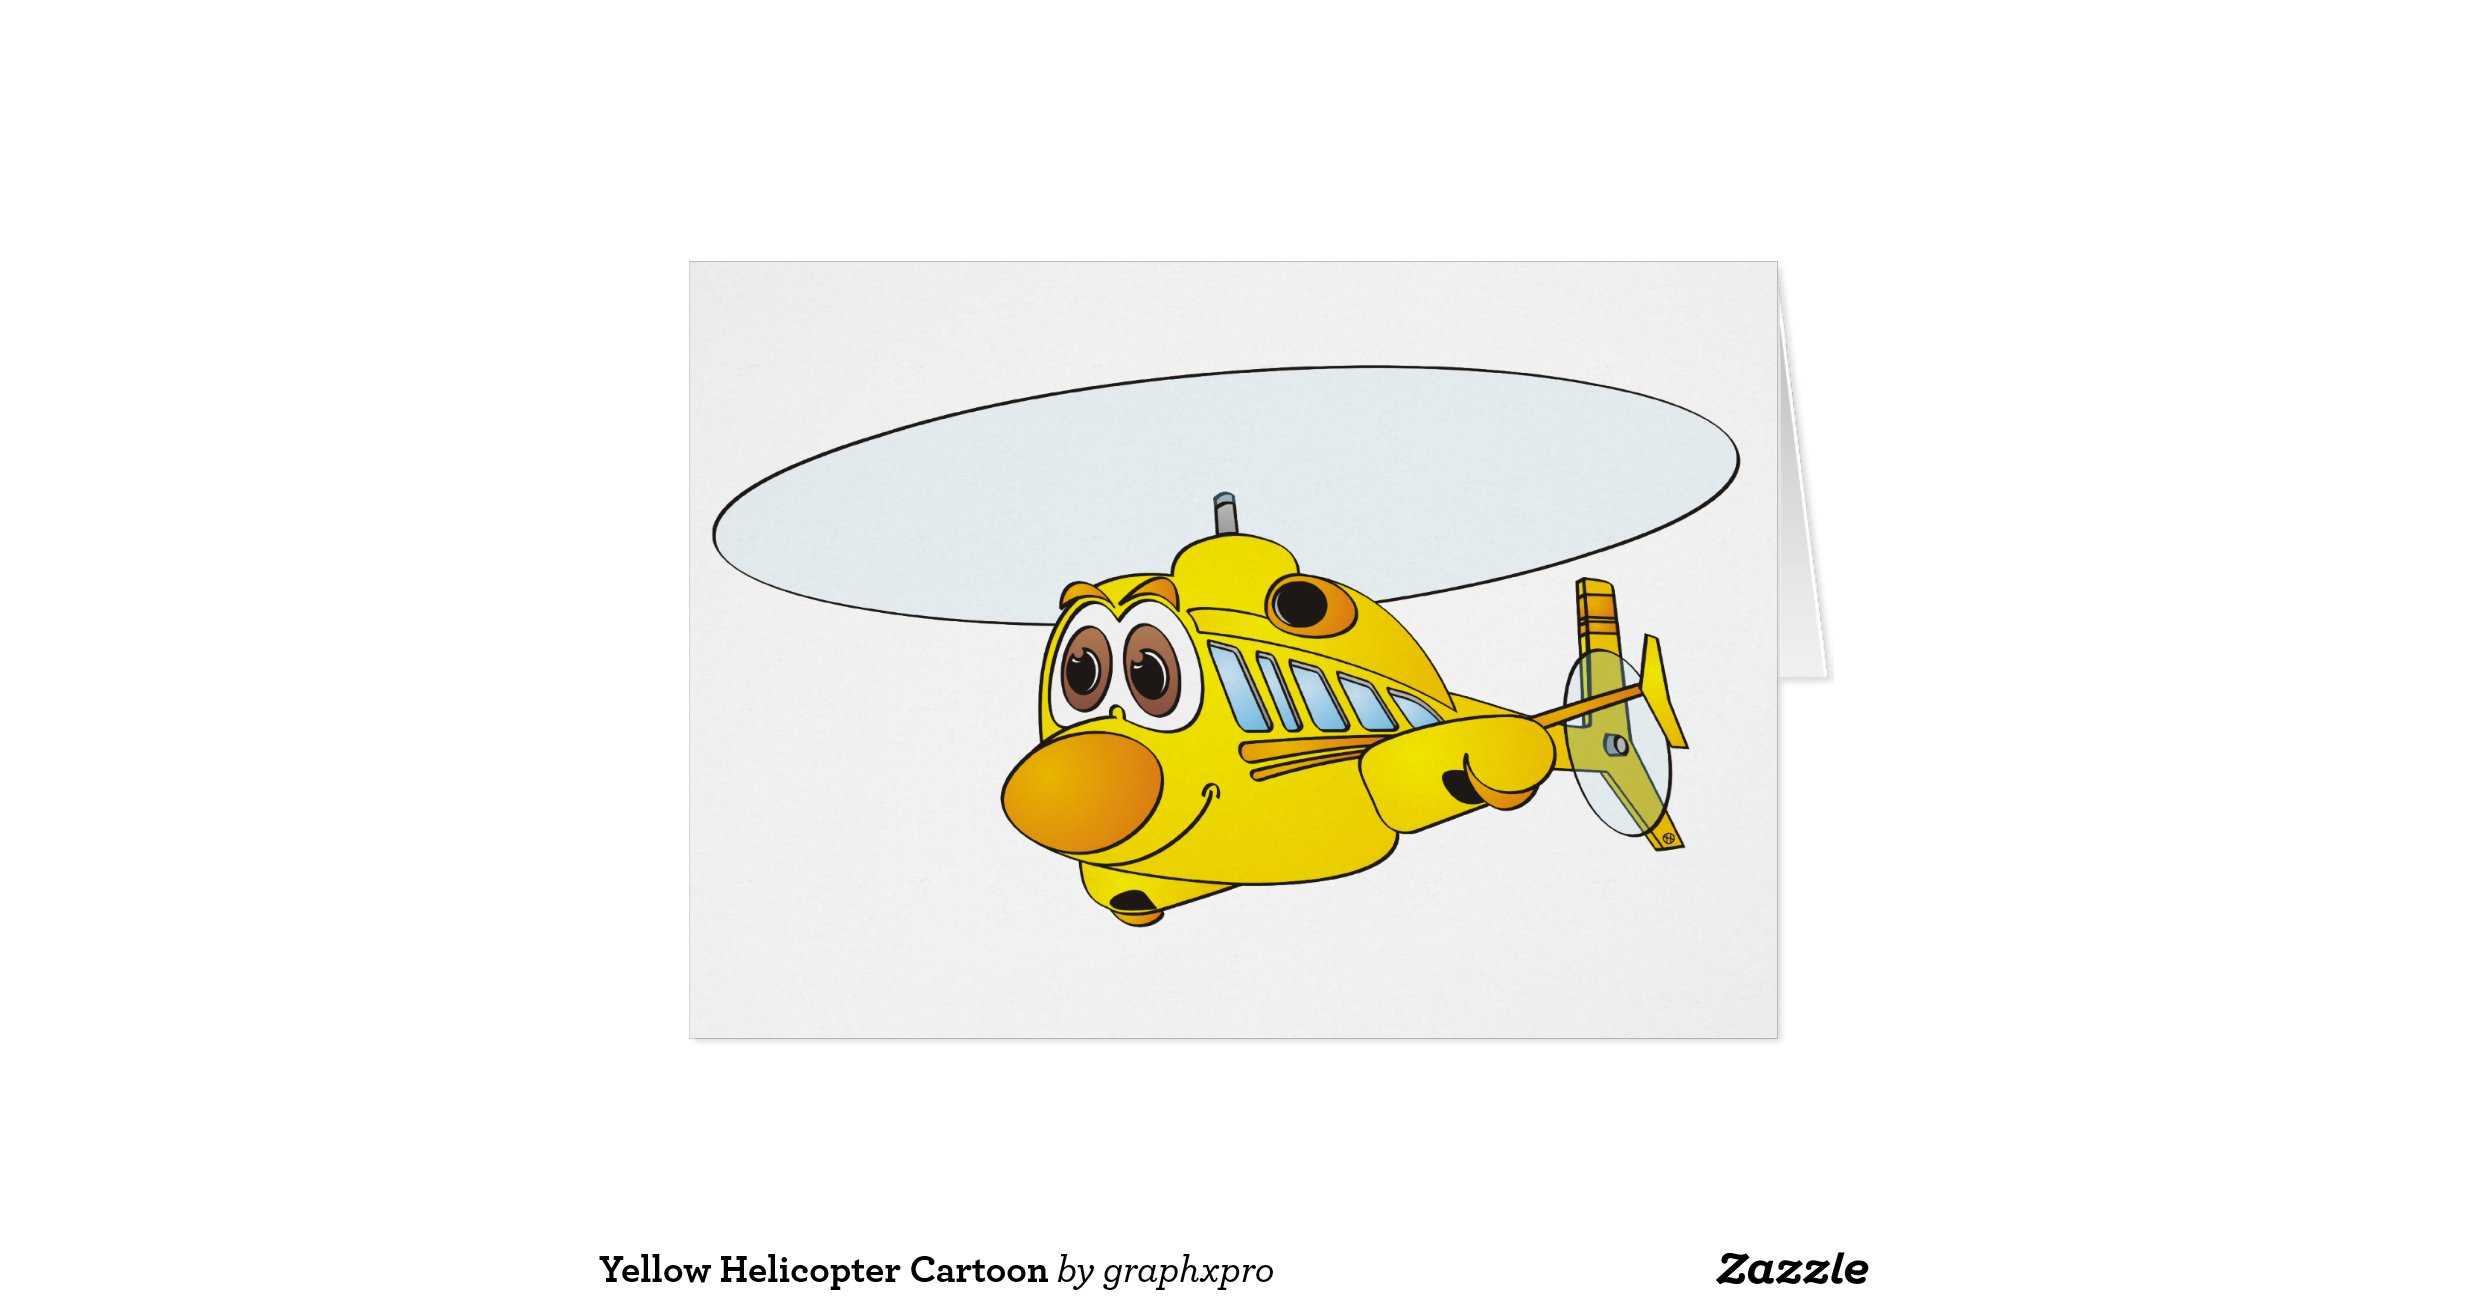 uk helicopter manufacturers with Yellow Helicopter Cartoon Greeting Card 137158749019233577 on Yellow helicopter cartoon greeting card 137158749019233577 together with Fathers day soccer dad t shirt 235229846802481925 moreover Outdoor Swing Sofa as well Skyrunner A Buggy That Can Also Fly moreover Tucson Steel Shipping Container House.